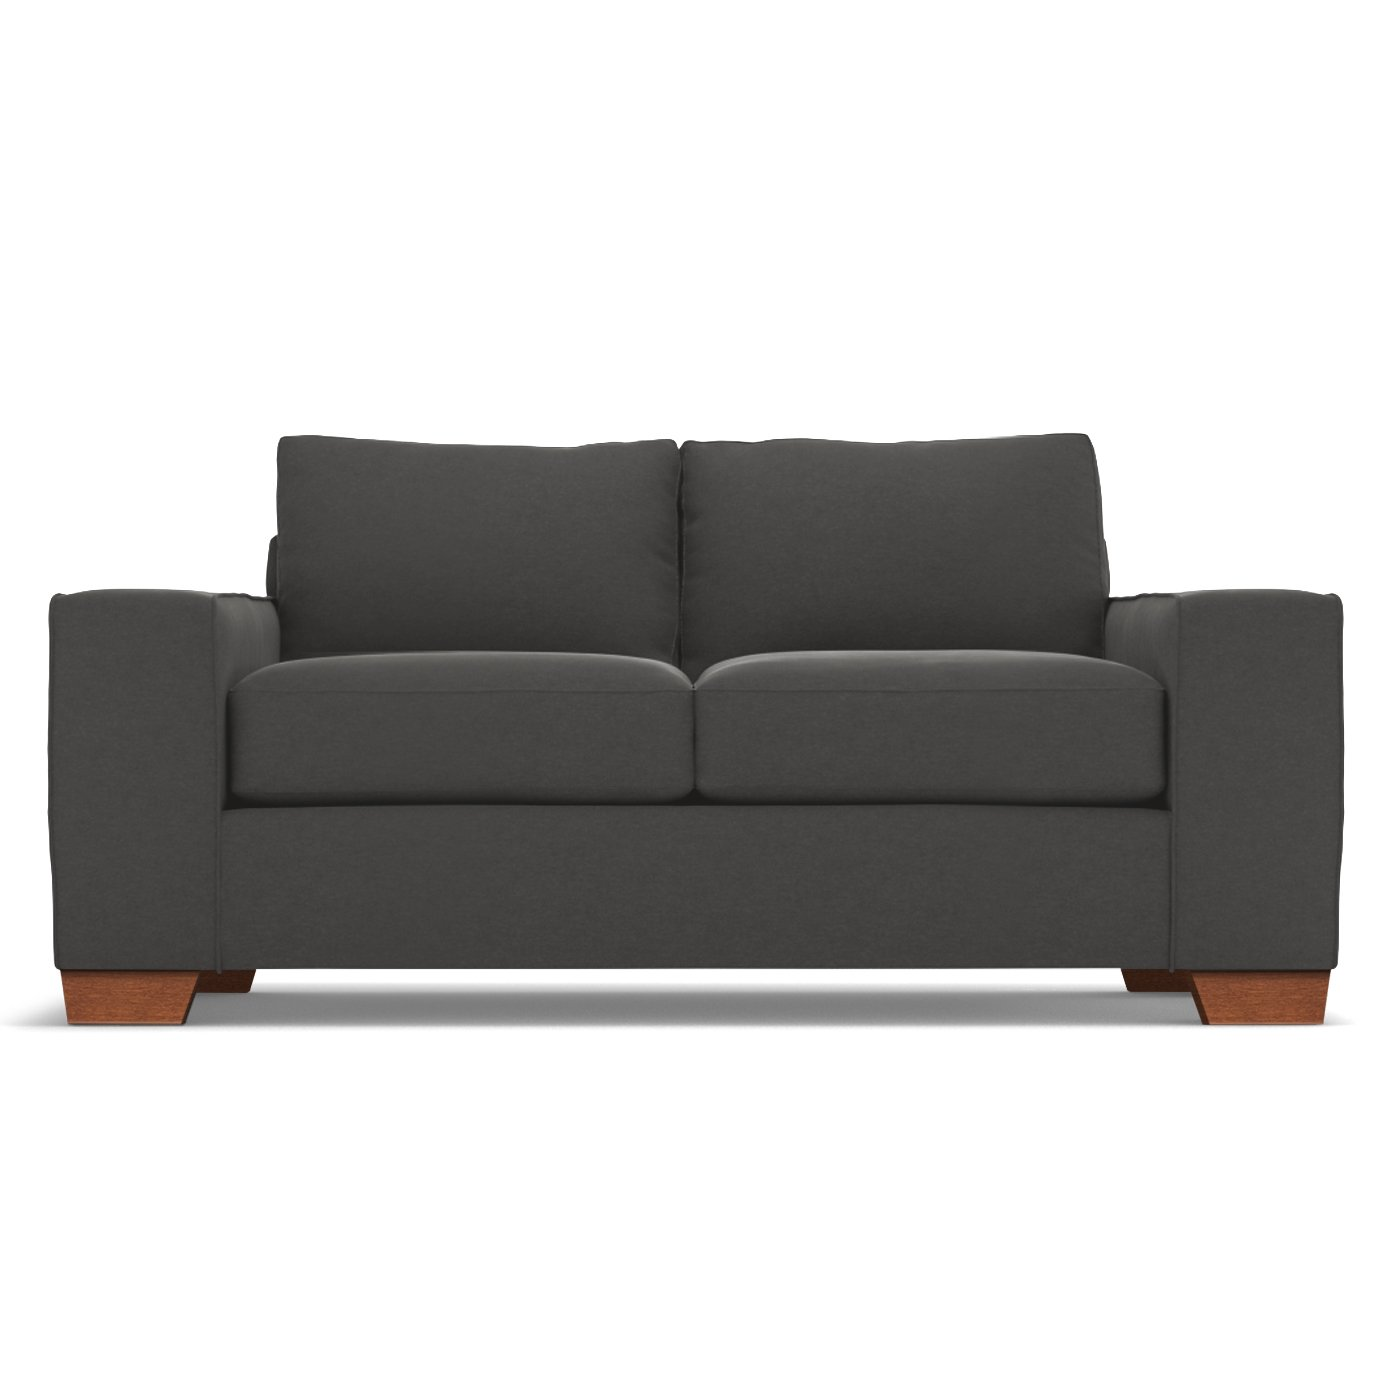 Melrose Apartment Size Sleeper Sofa